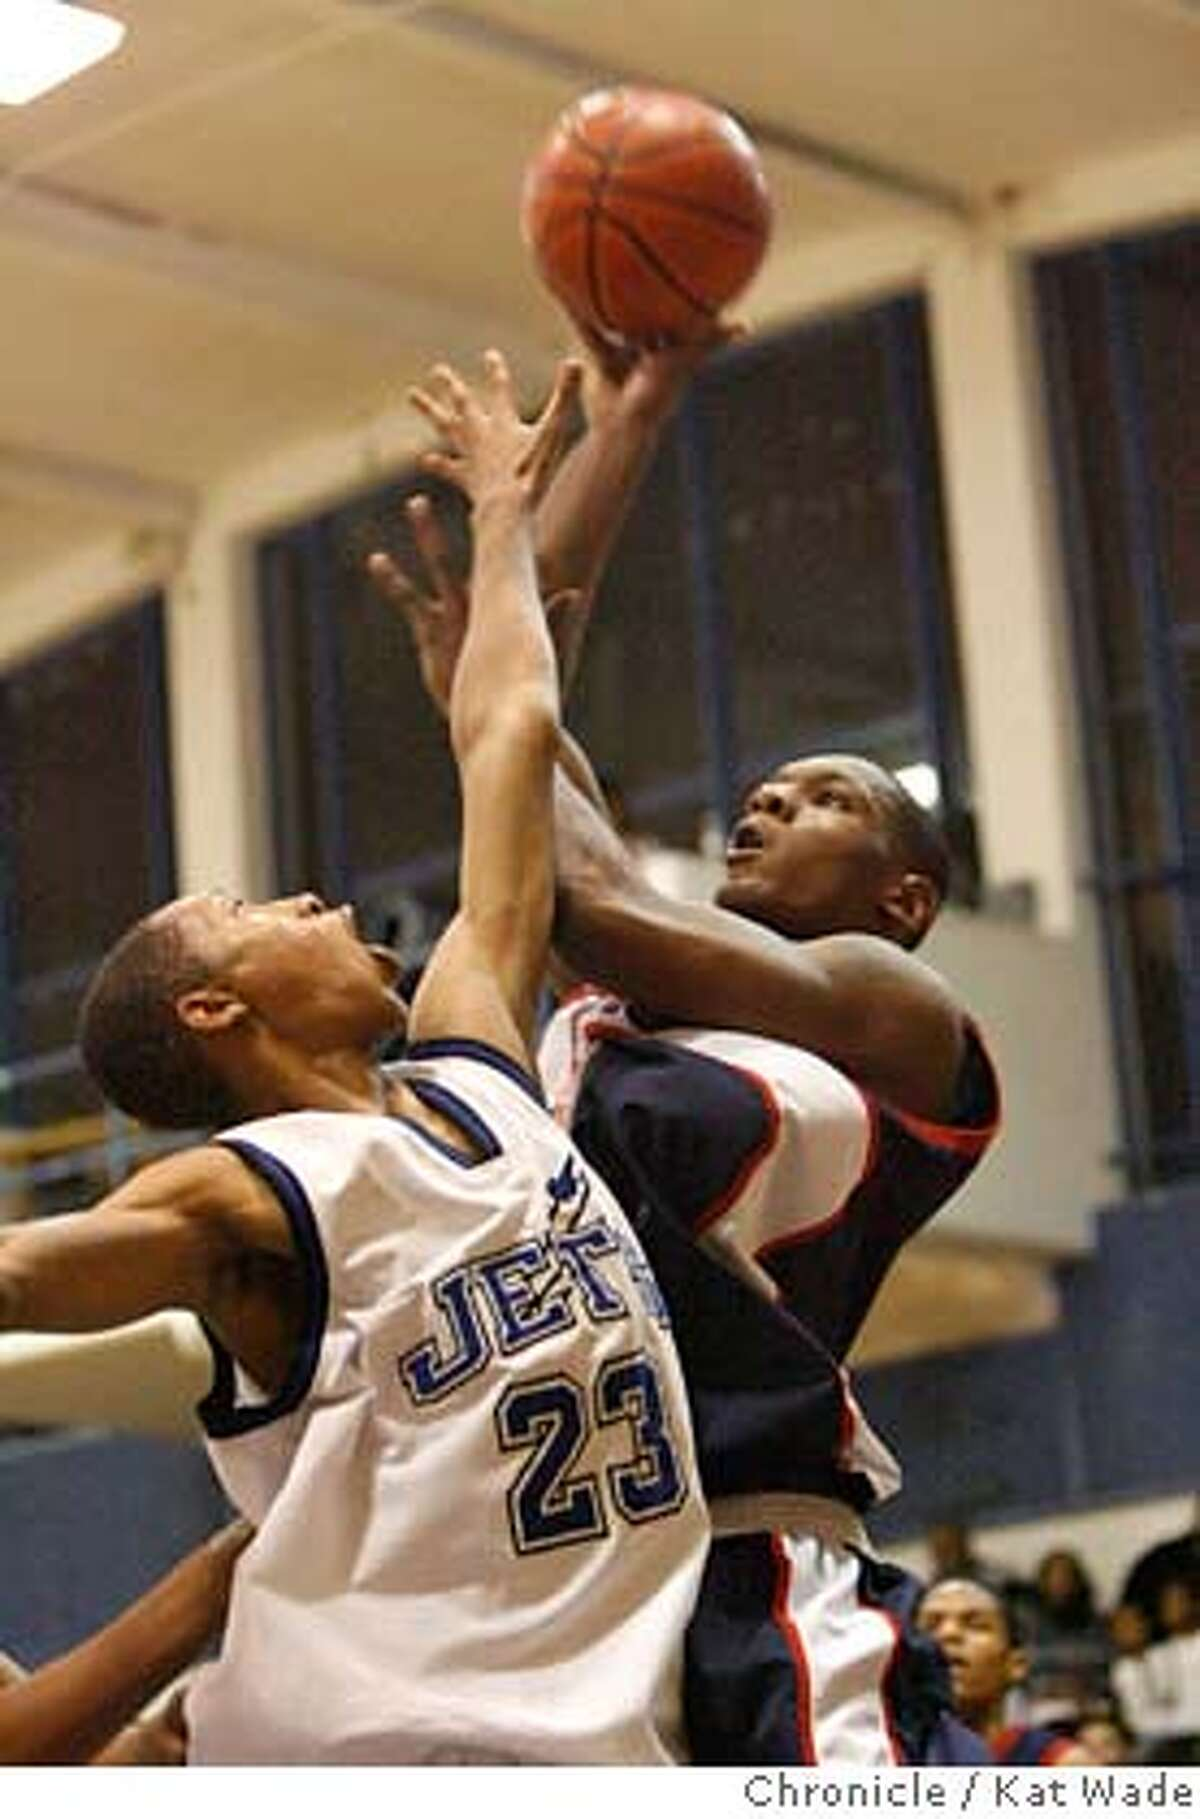 RICHMOND02_226_KW_.jpg The Oilers Wendell McKines (RIGHT) who has scored an average of 40 points per game this season goes up for a basket with pressure from the Jet's #23 James Peterson during the second half of the game on February 2, 2007 when Richmond High School Oilers beat the Encinal High School Jets in Alameda at Encinal during the last few minutes of the game. Kat Wade/The Chronicle Mandatory Credit for San Francisco Chronicle and photographer, Kat Wade, Mags out